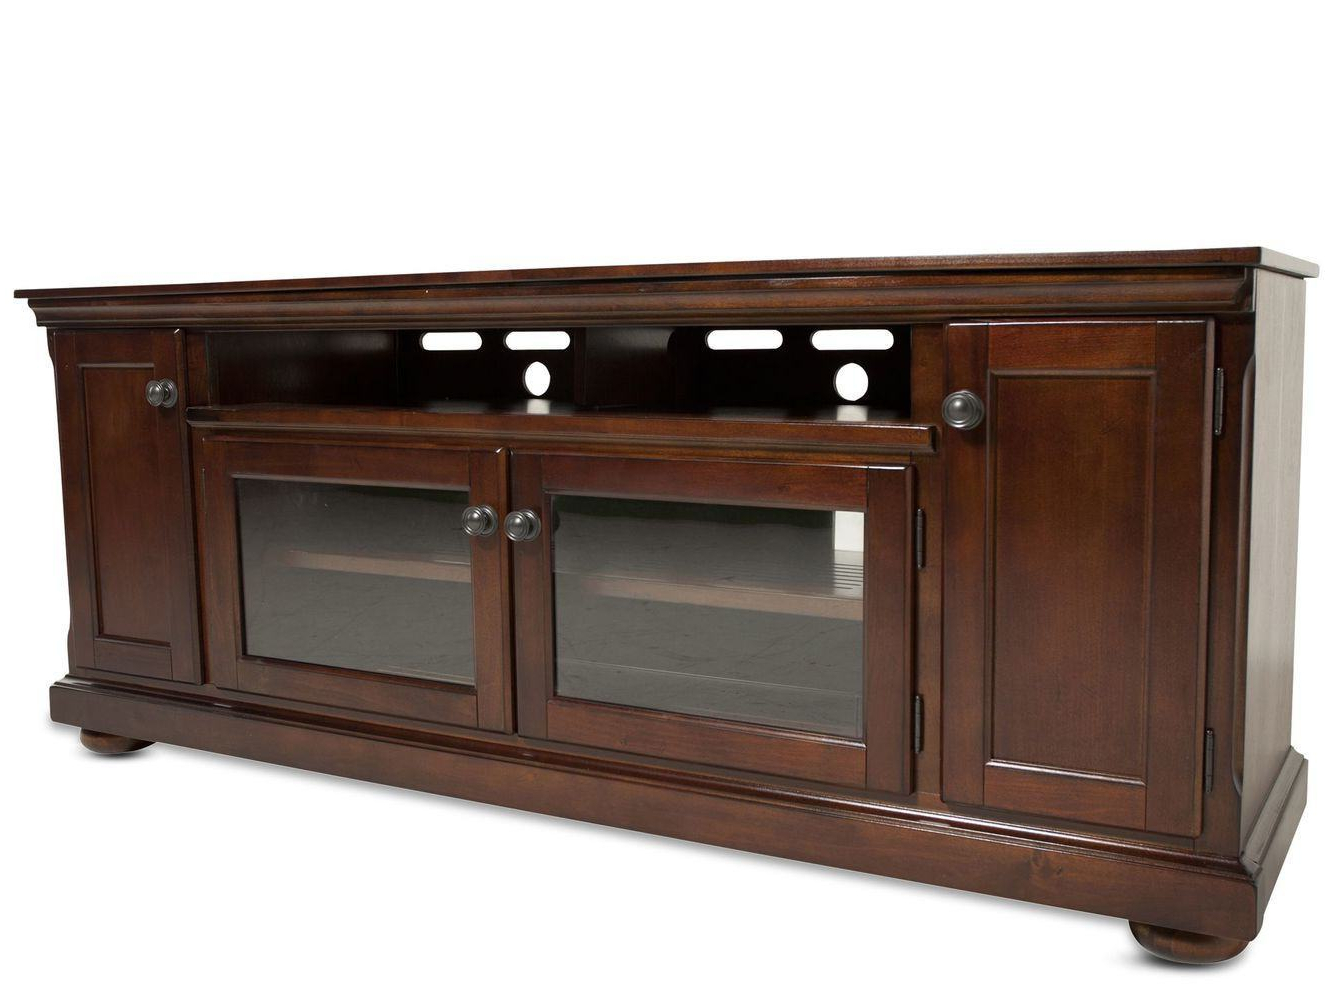 Simple 72 Inch Tv Stand 72 Inch Tv Stand | Cakestandlady Pertaining To Walton 72 Inch Tv Stands (Gallery 5 of 20)